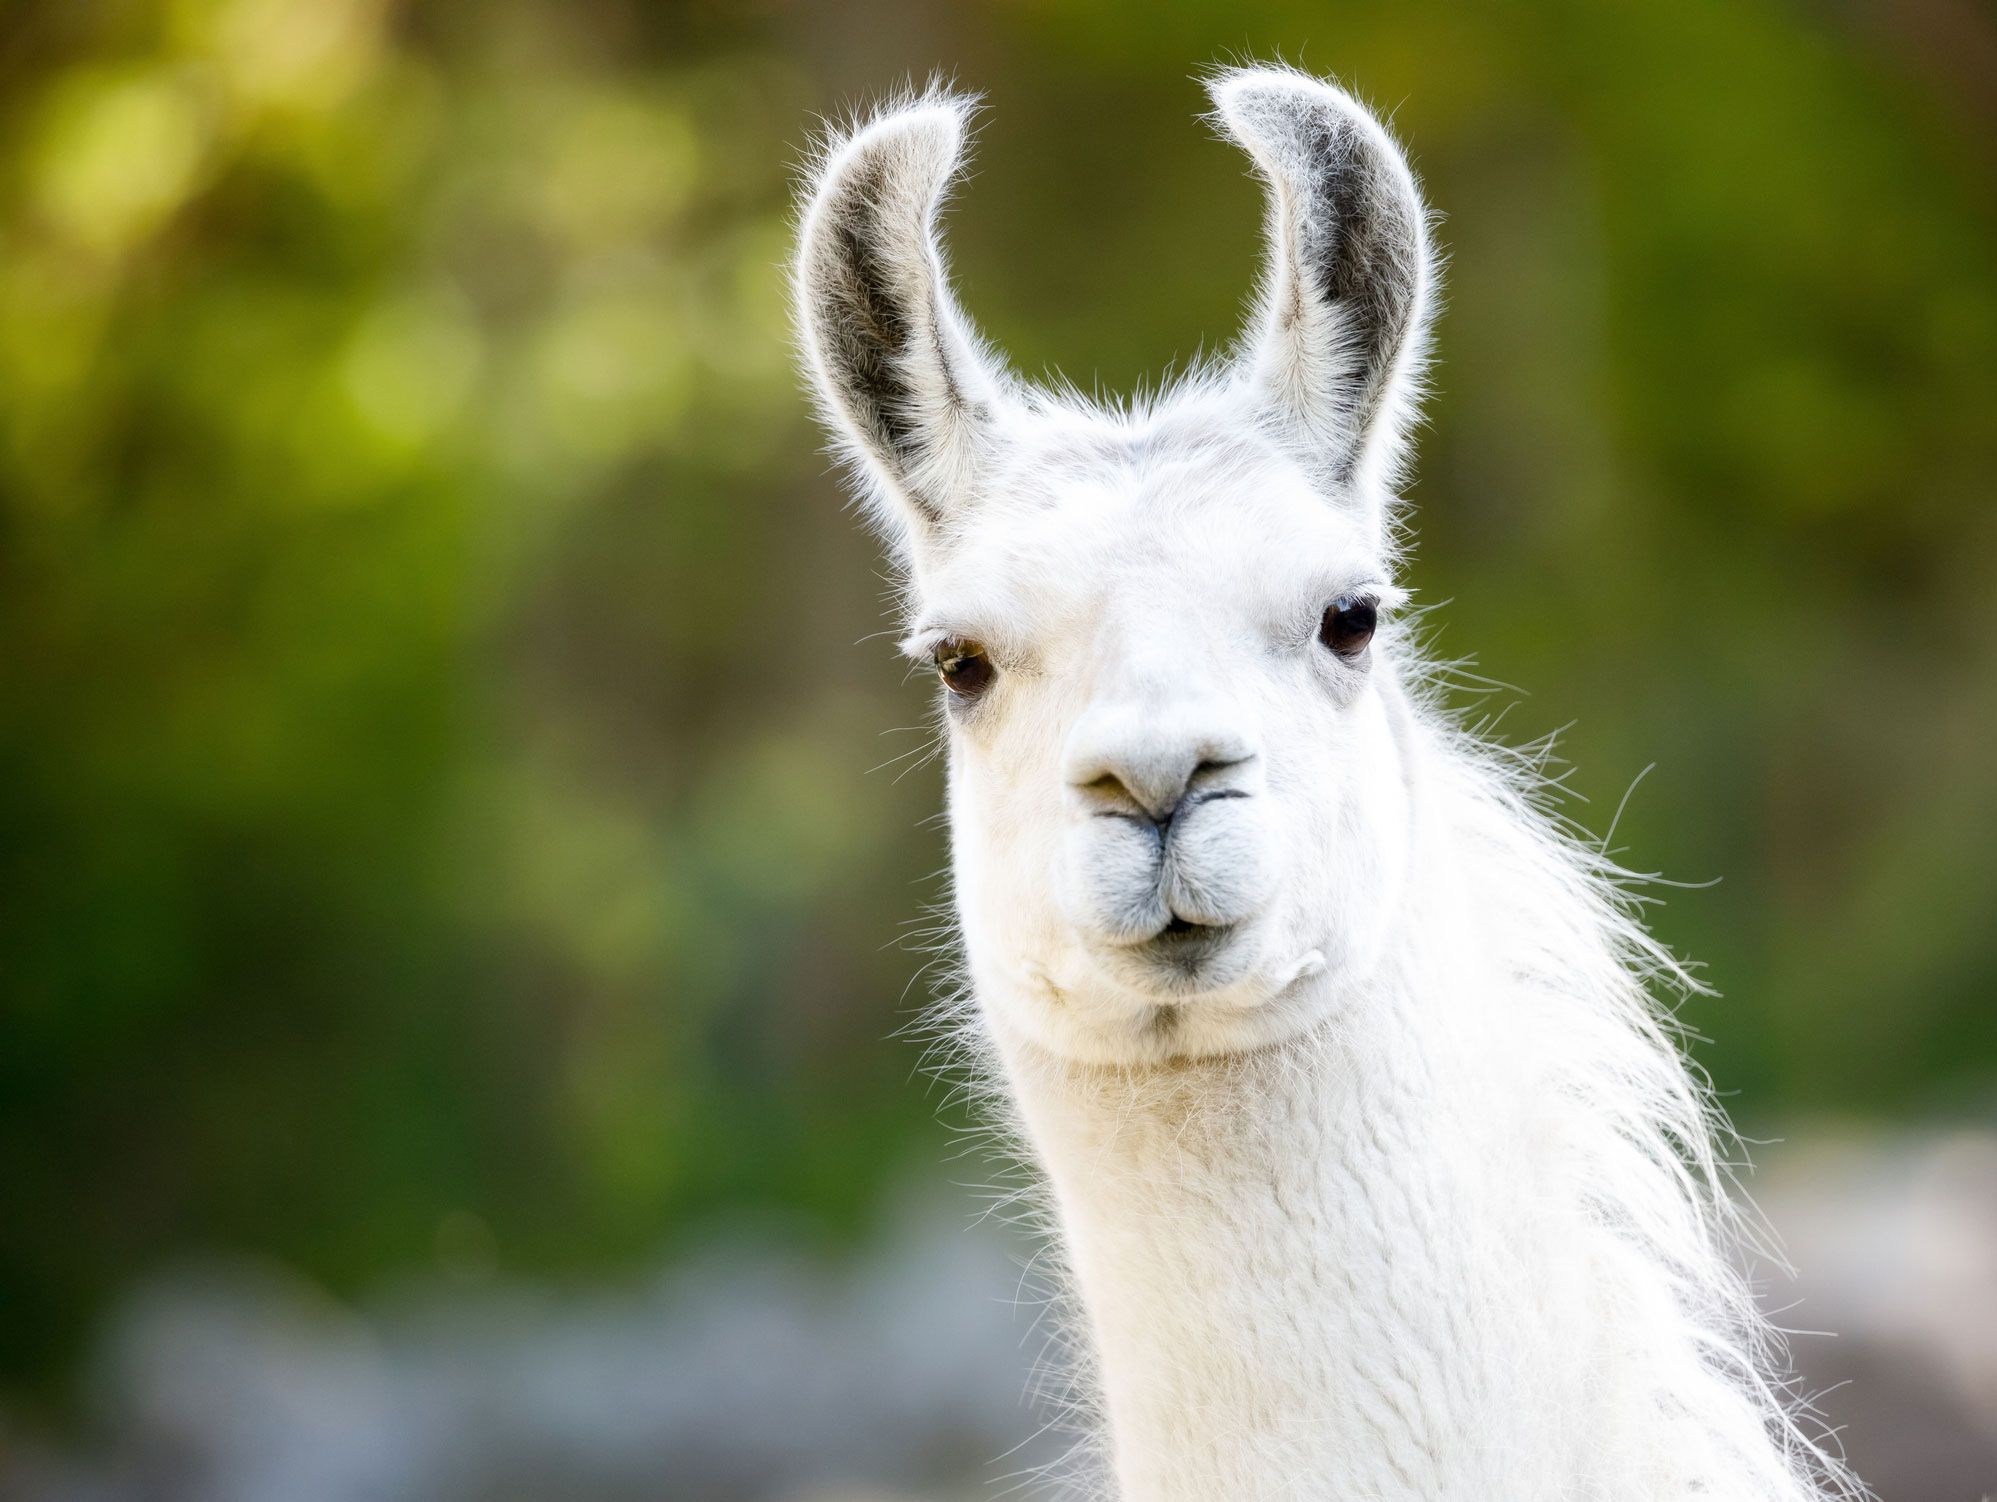 Llama hidden in secret Belgian location could defeat coronavirus